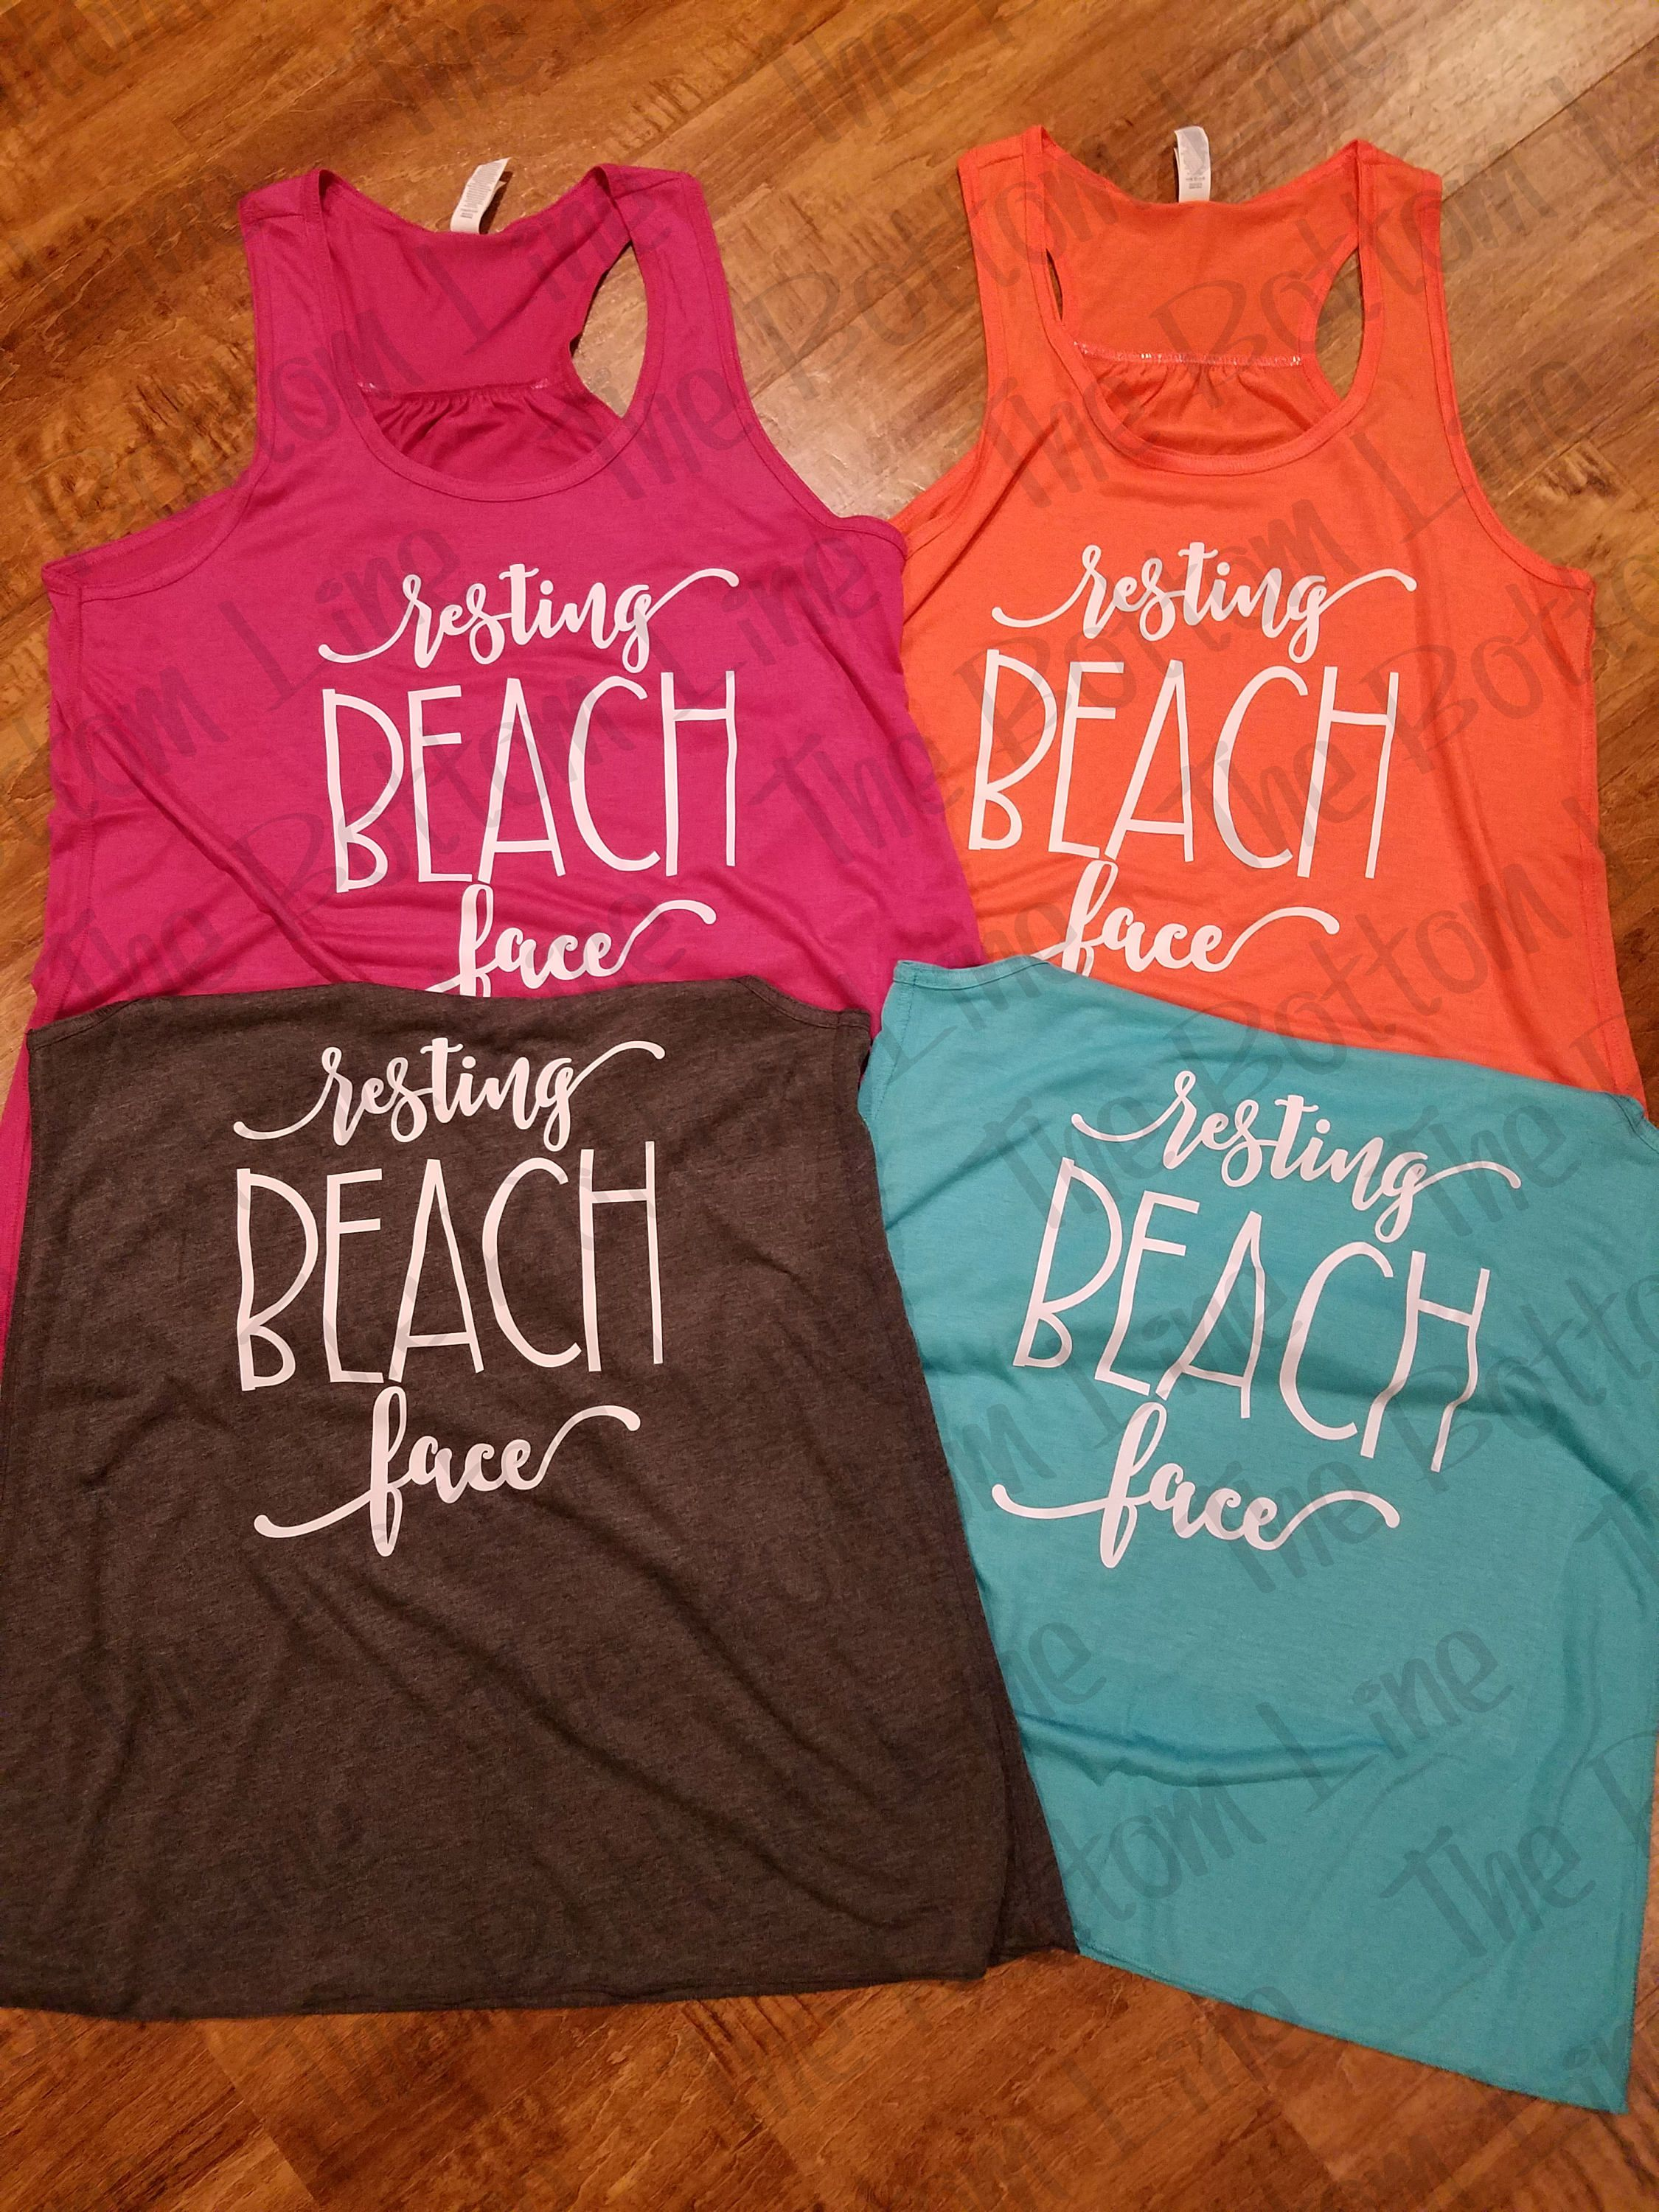 ddd12b1964138 Resting Beach Face Tank Top  Flowy Tank  Womens Funny Shirt  Party Tank  Summer  Top  Vacation Tank  Beach Shirt  Bachelorette Party by sheribottomline on  ...